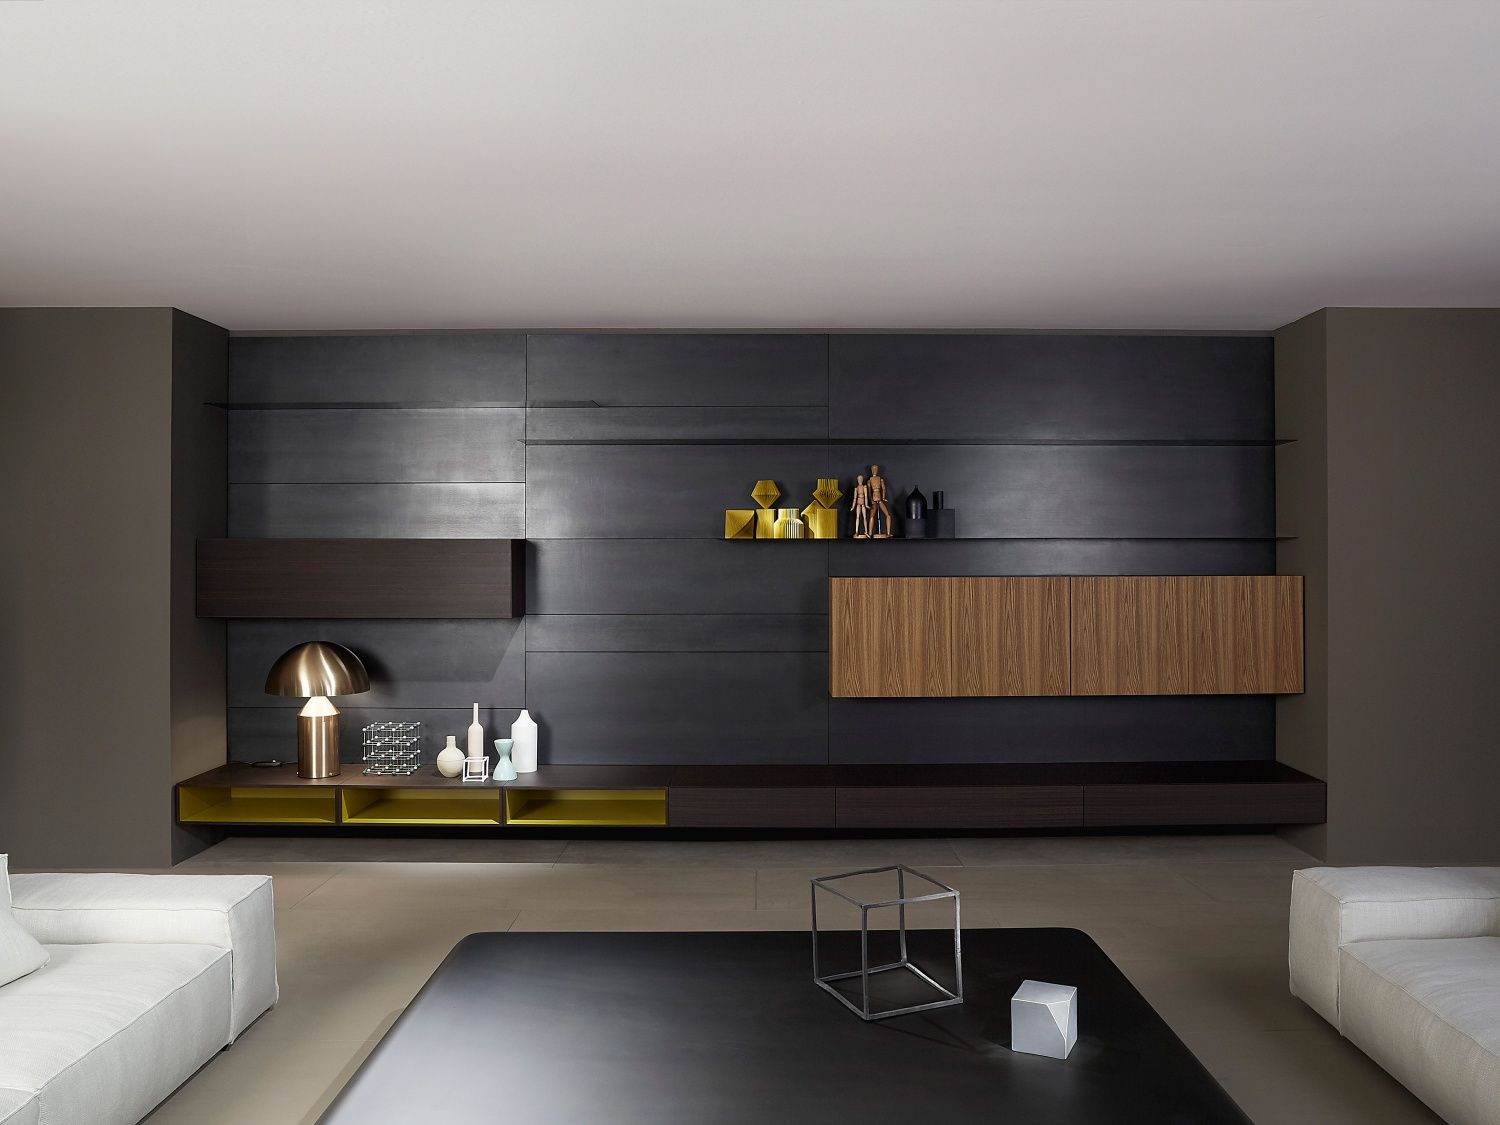 MODERN LIVING   Designer Wall Storage Systems From PORRO ✓ All Information  ✓ High Resolution Images ✓ CADs ✓ Catalogues ✓ Contact Information.